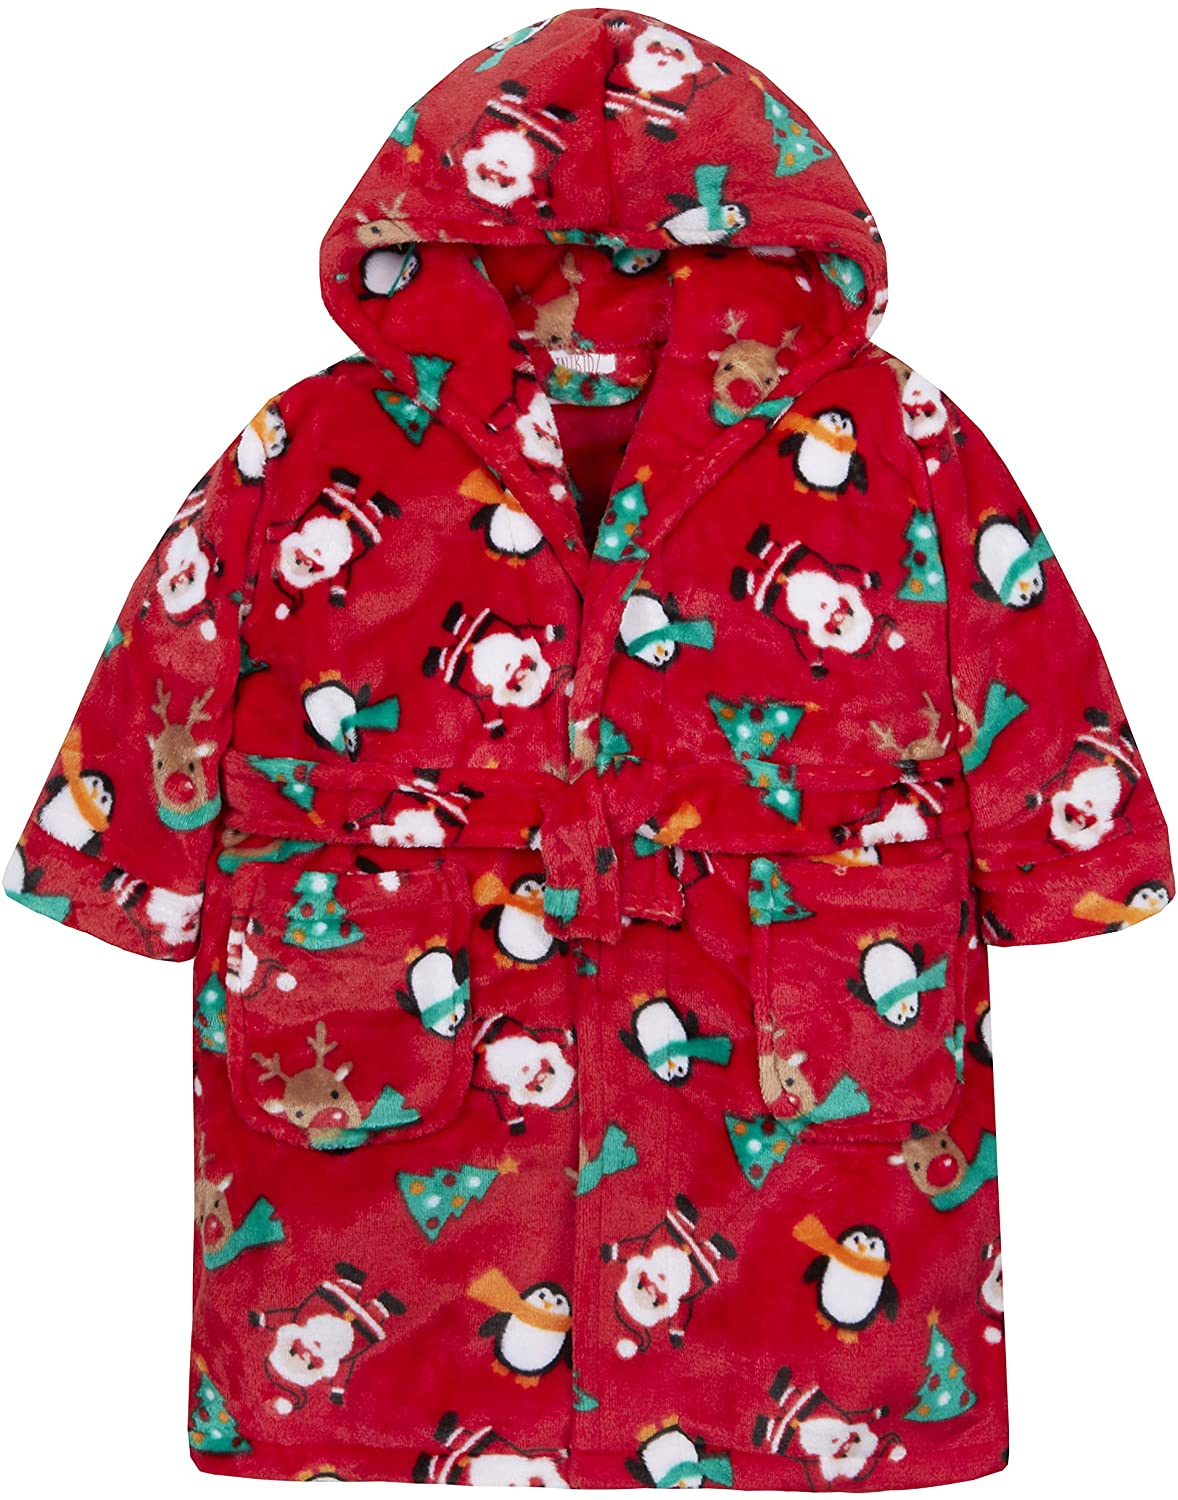 Metzuyan Boys & Girls Christmas Novelty Hooded Dressing Gown